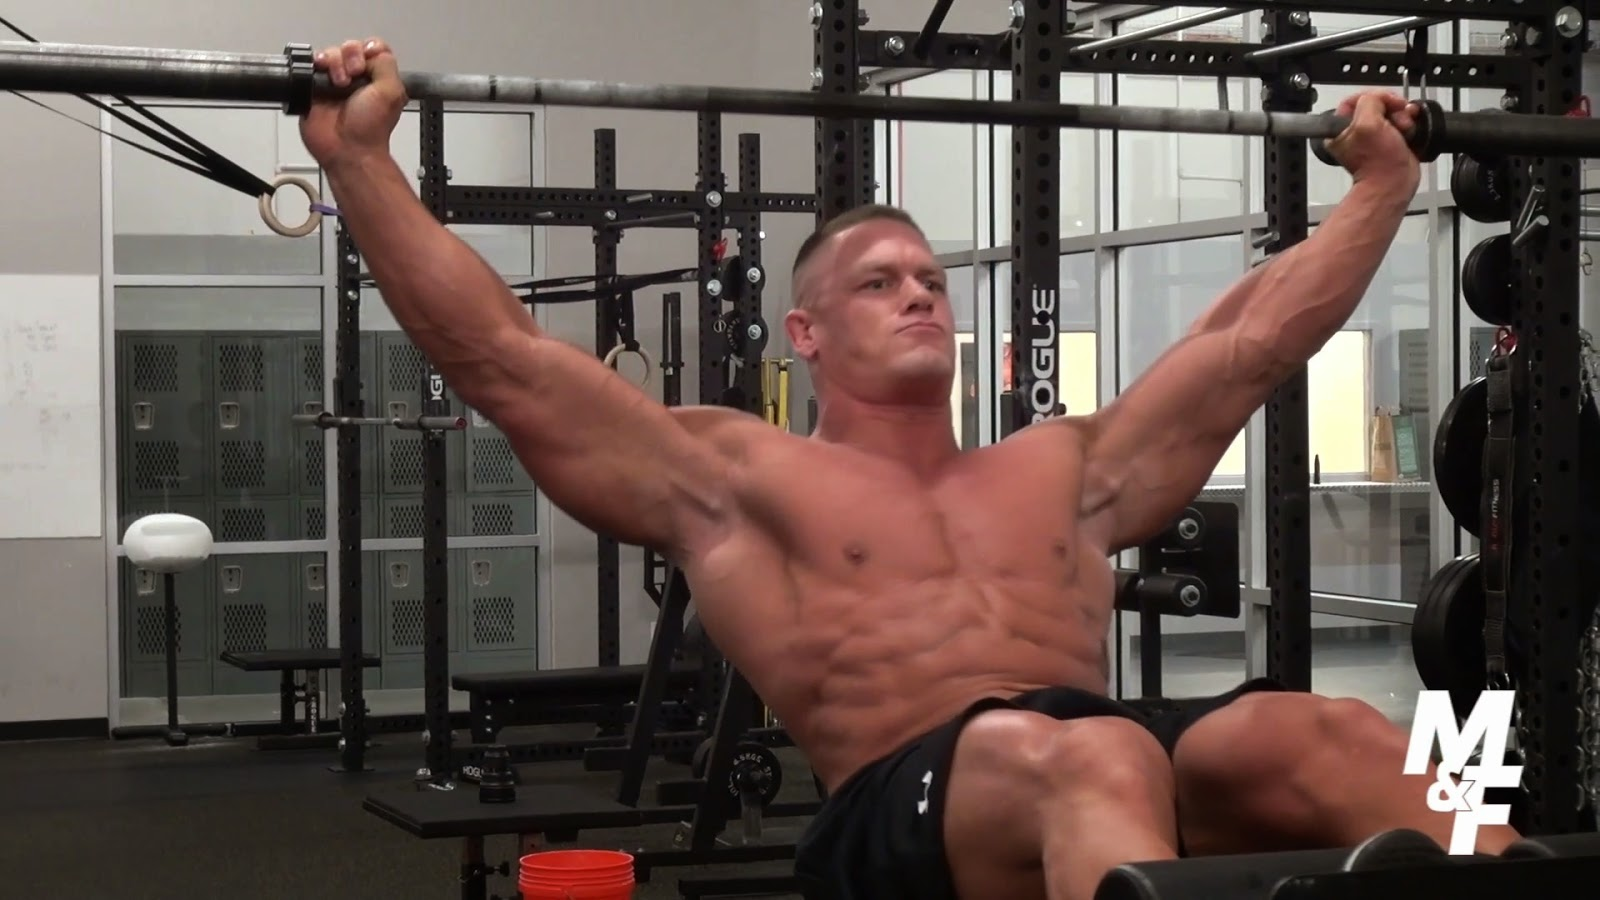 Body building workout and diet plan john cena gym workout - John cena gym image ...